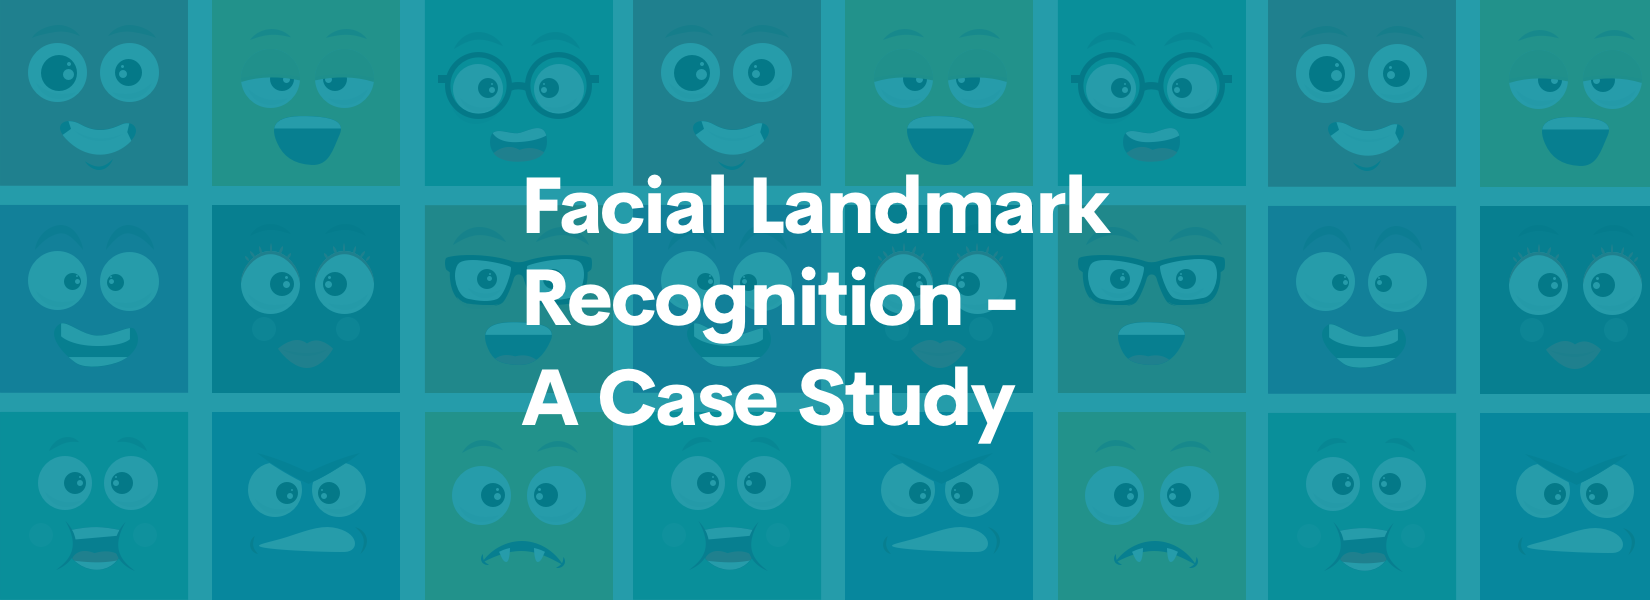 Using AI to detect Facial Landmarks for improved accuracy